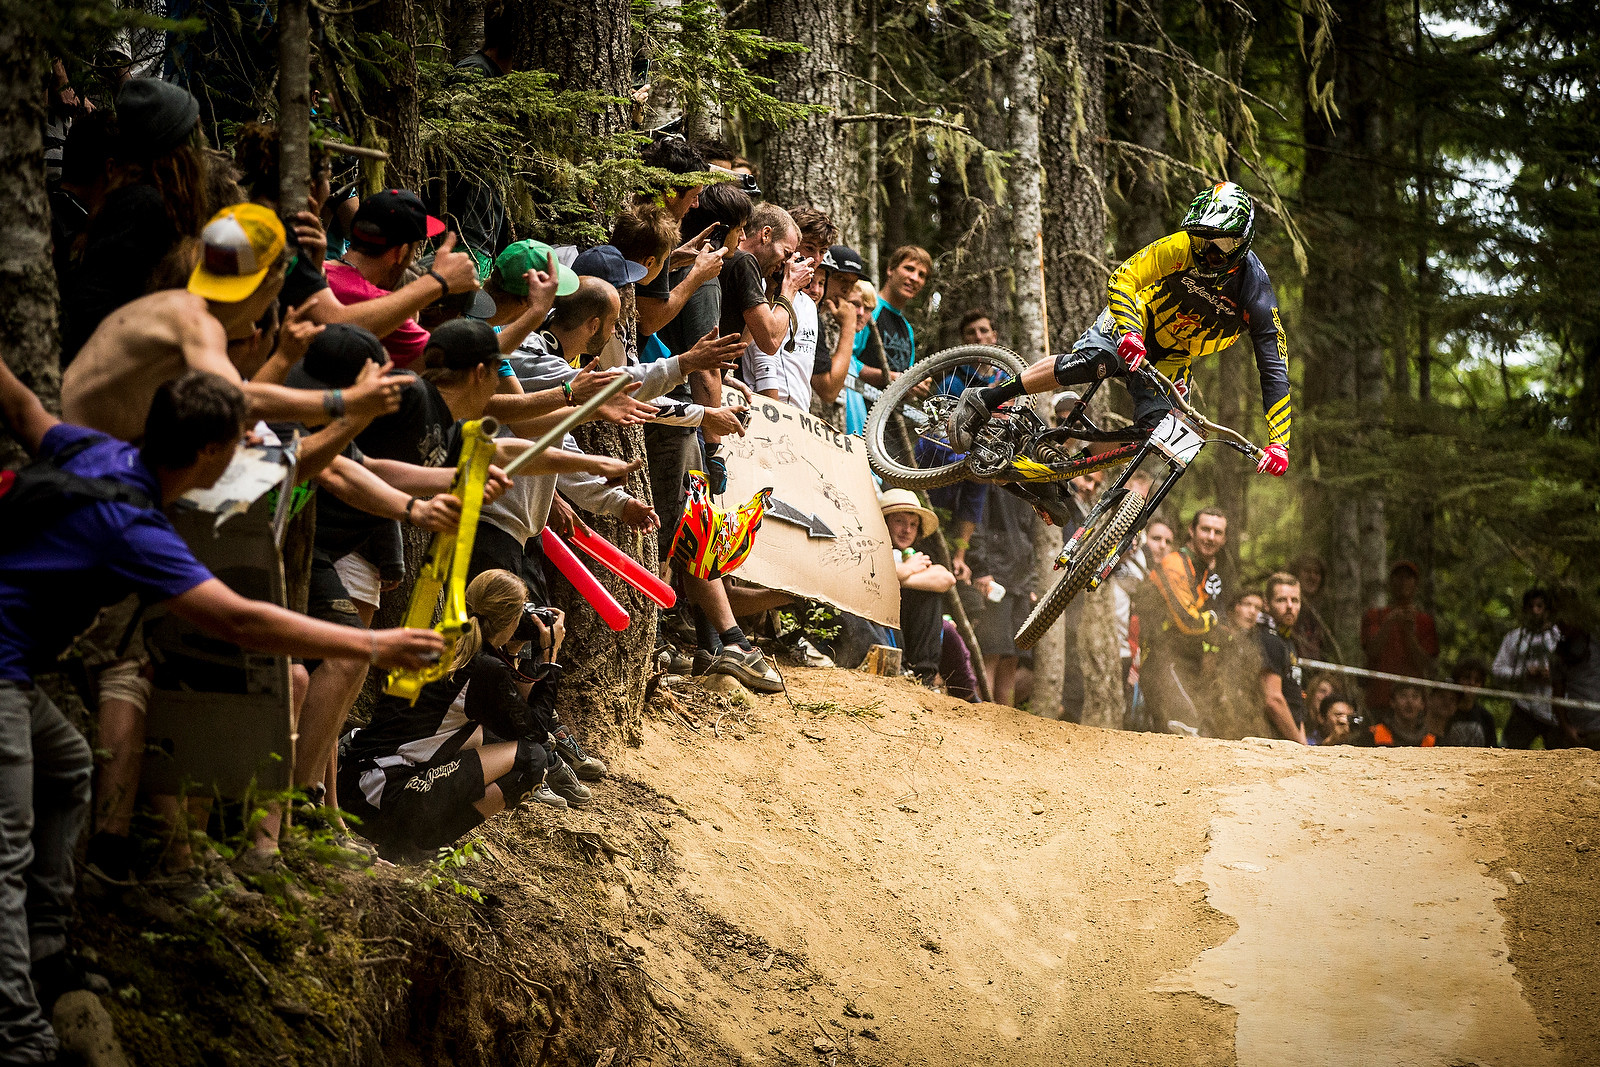 Troy Brosnan Pushes Back the Crown at Crankworx Air DH - Crankworx Whistler Air DH - Mountain Biking Pictures - Vital MTB